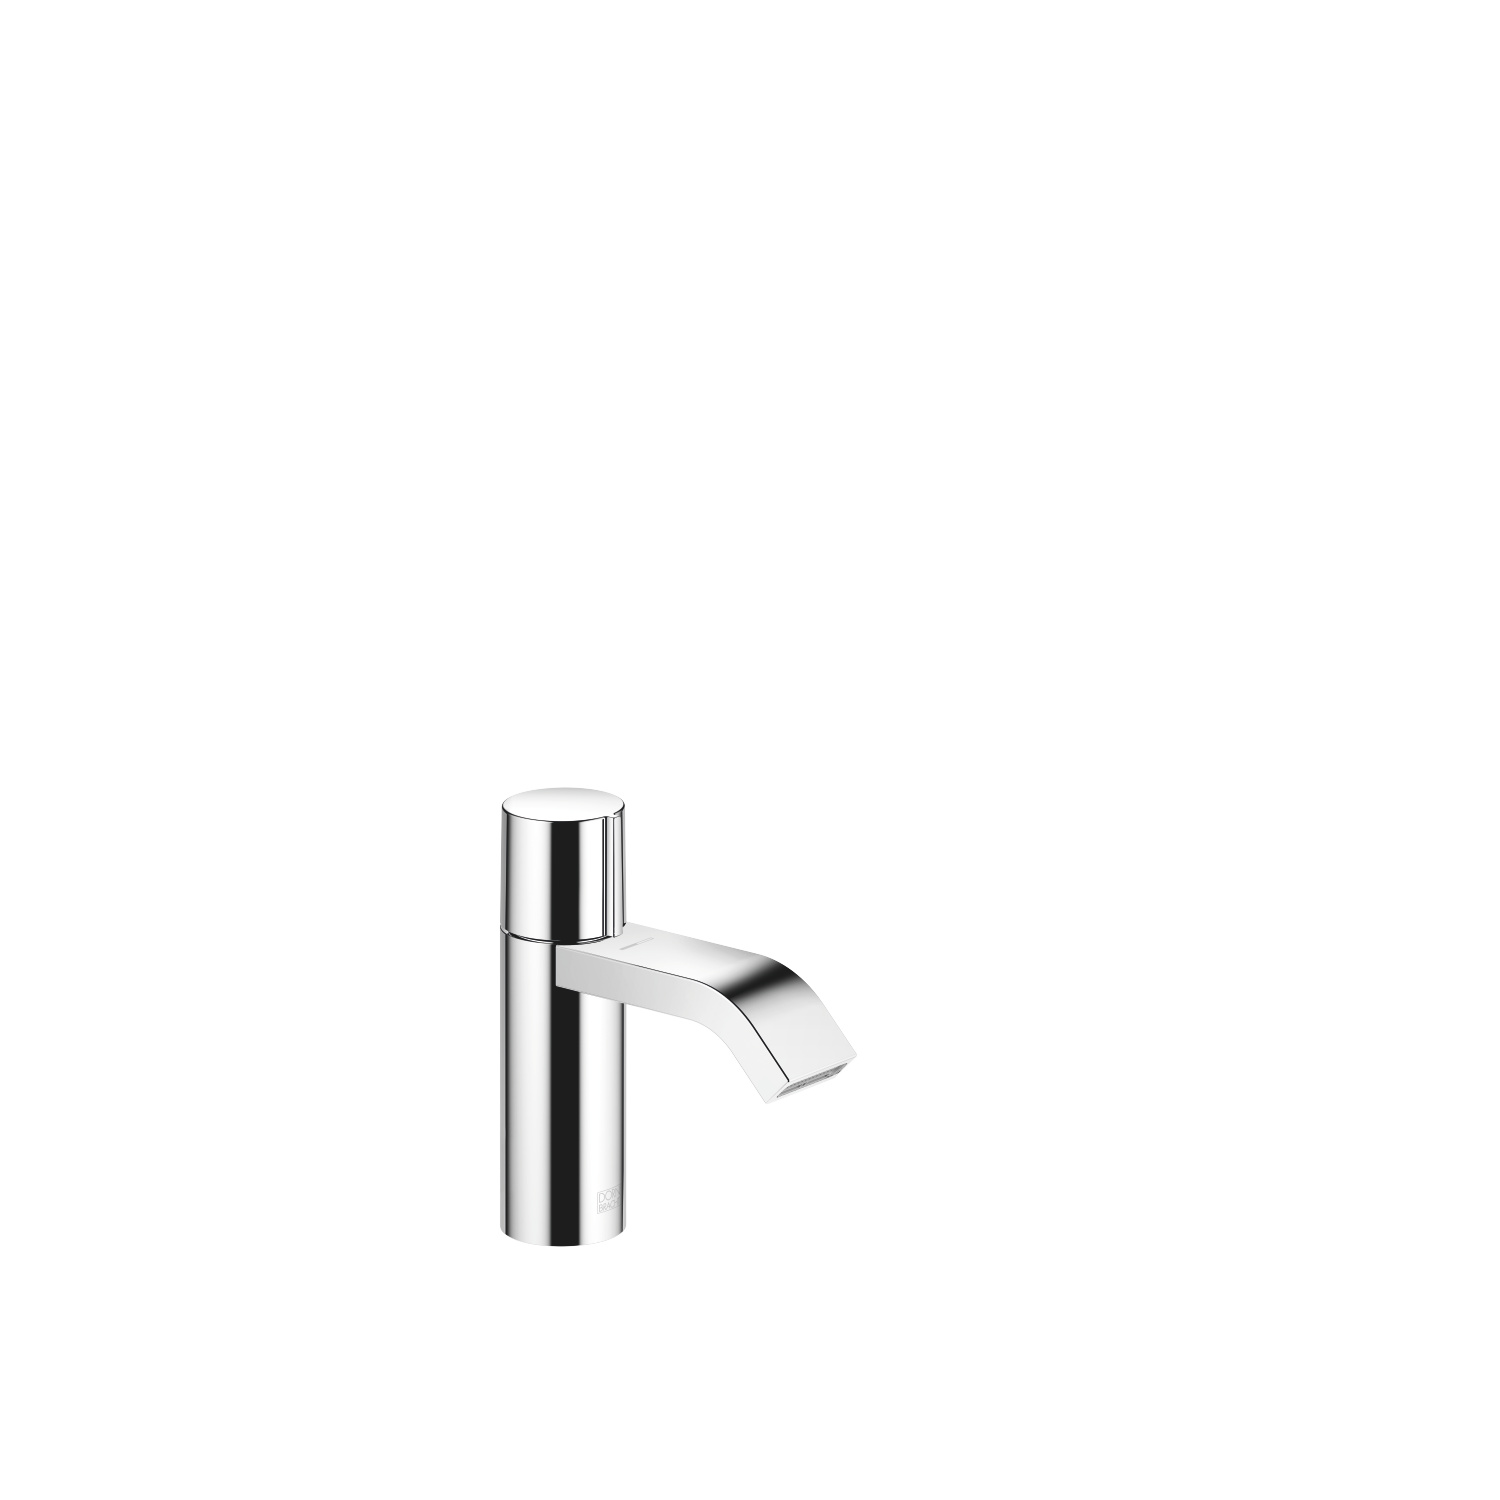 Single-lever lavatory mixer without drain - polished chrome